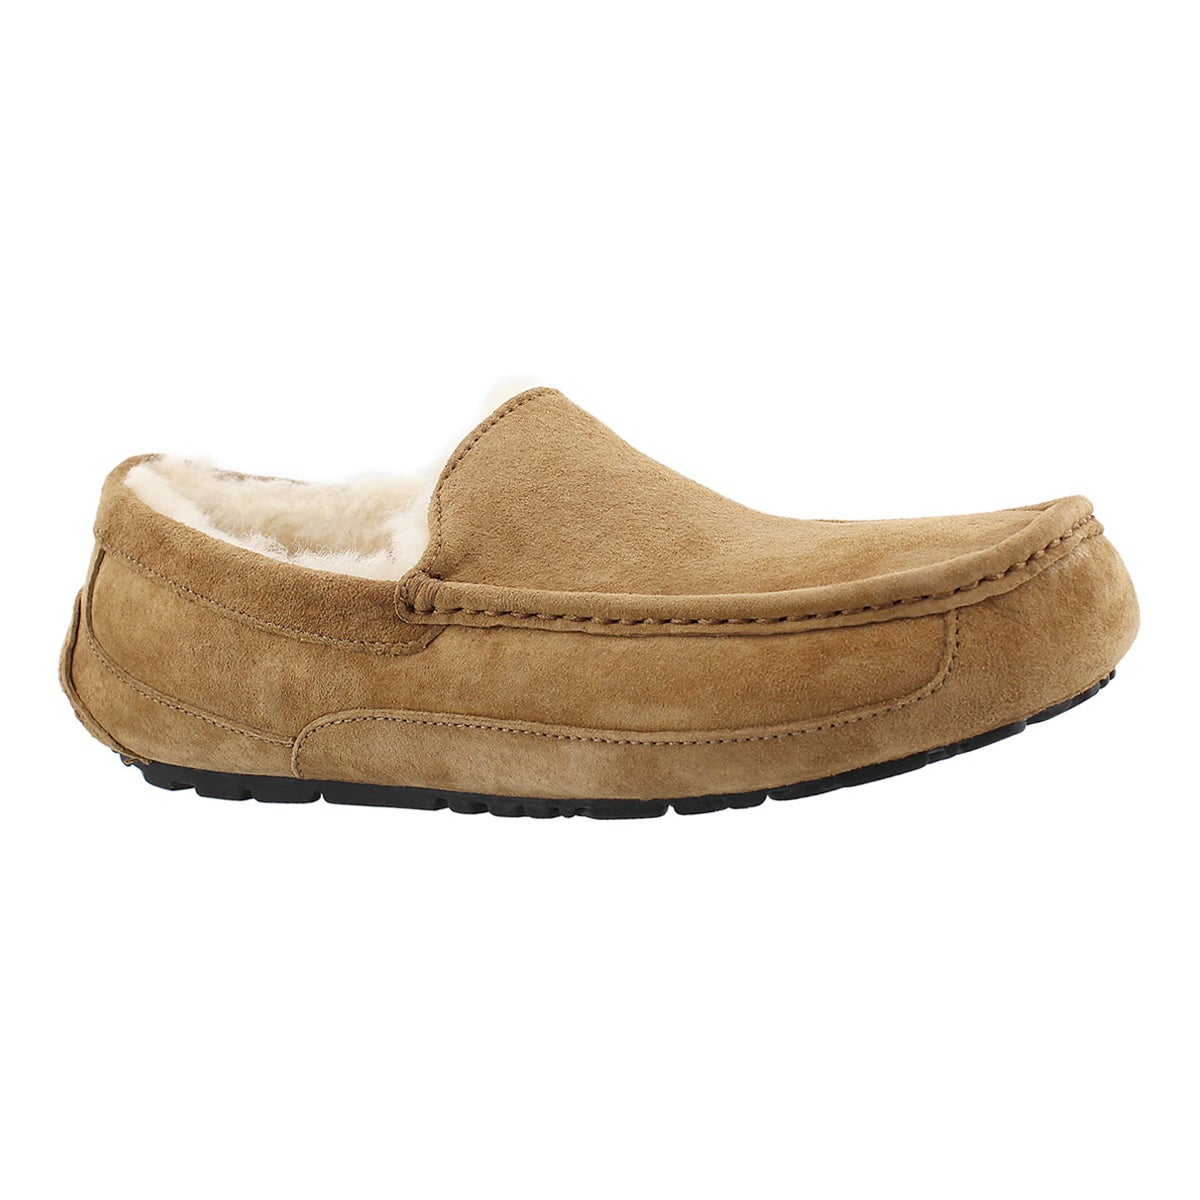 Men's ASCOT chestnut sheepskin fashion moccasins